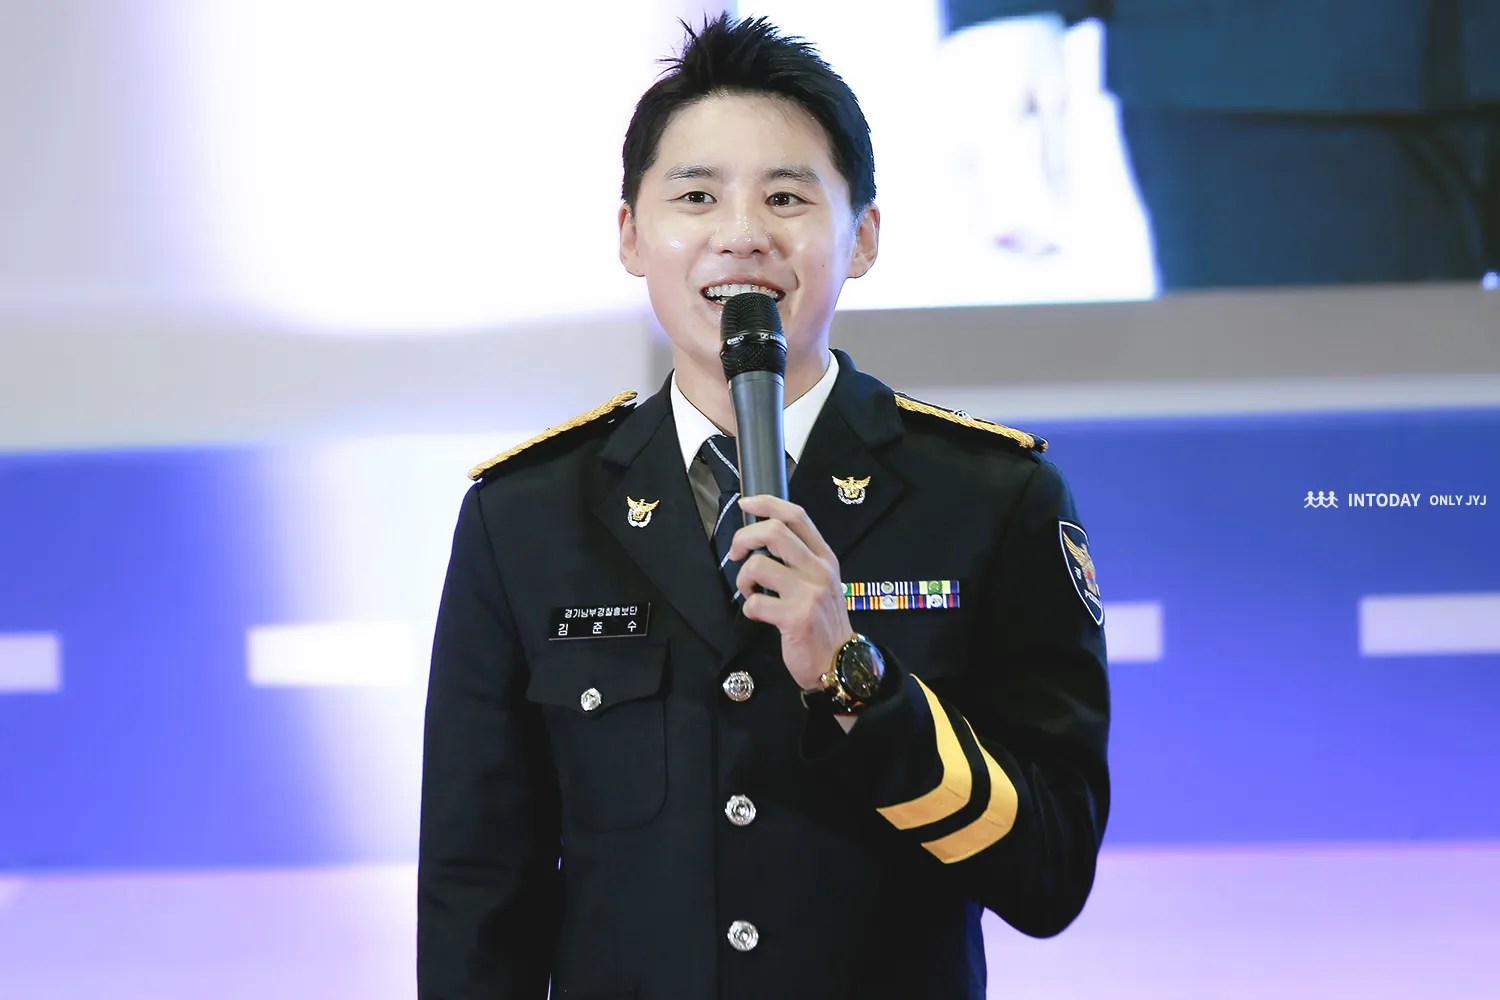 photo JYJ_inToday_03.jpg